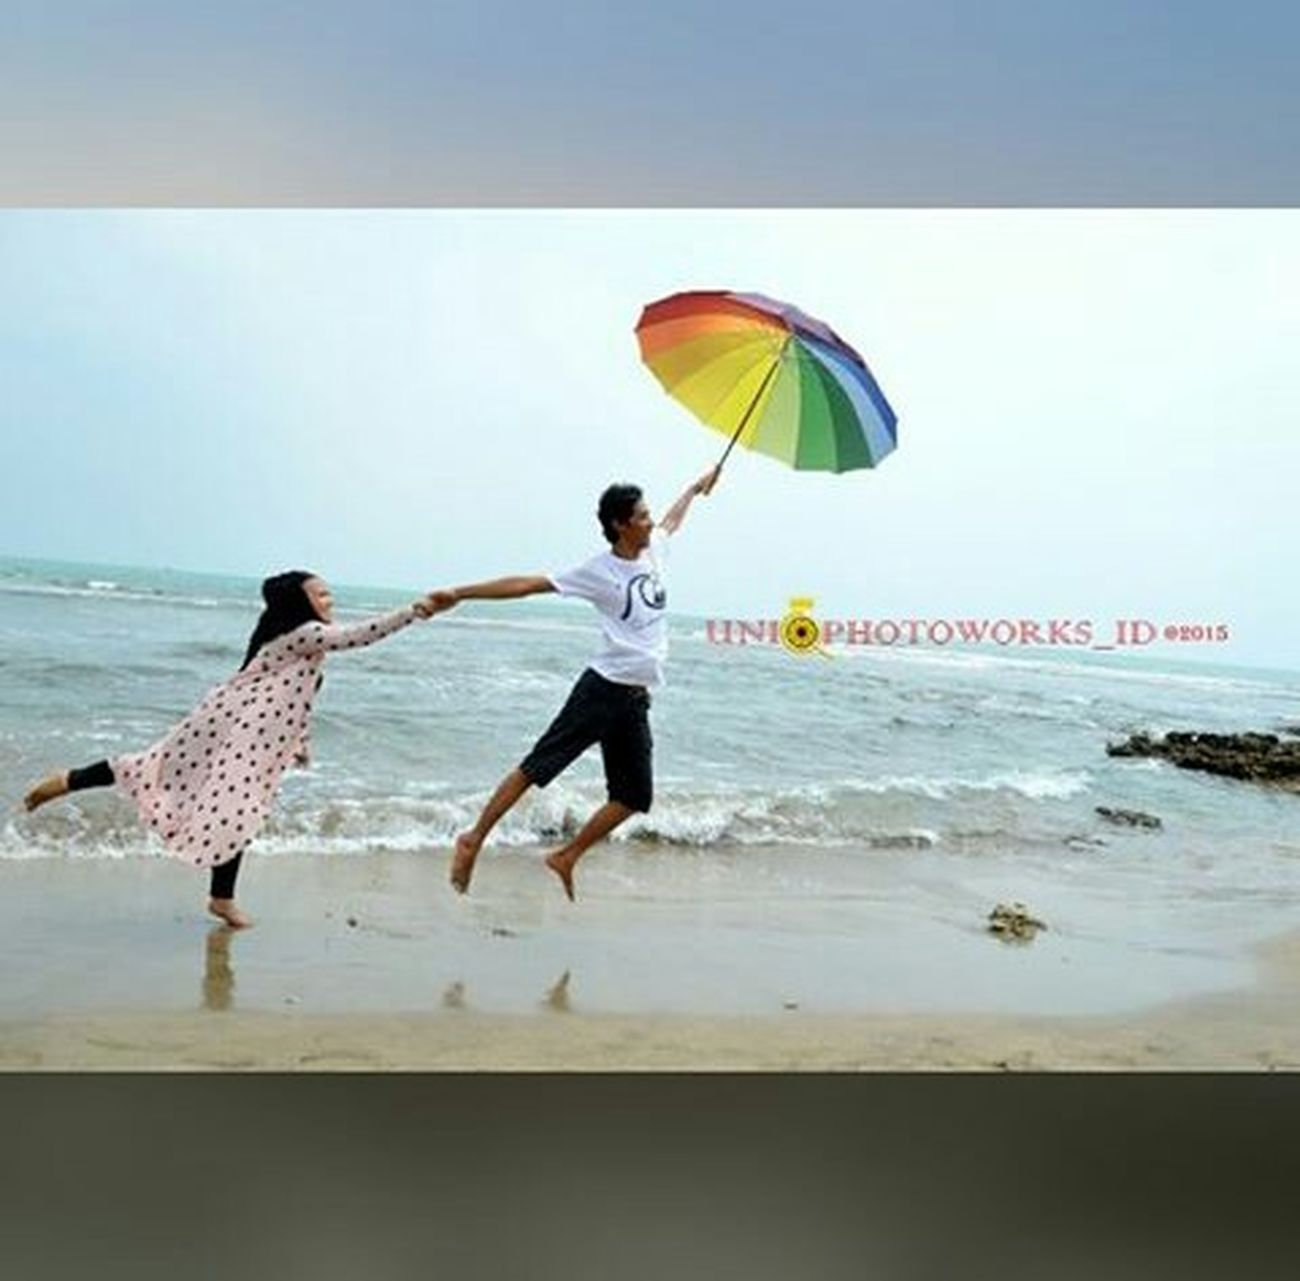 Beach Bantenindonesia Anyerbeach Flying High with Umbrella